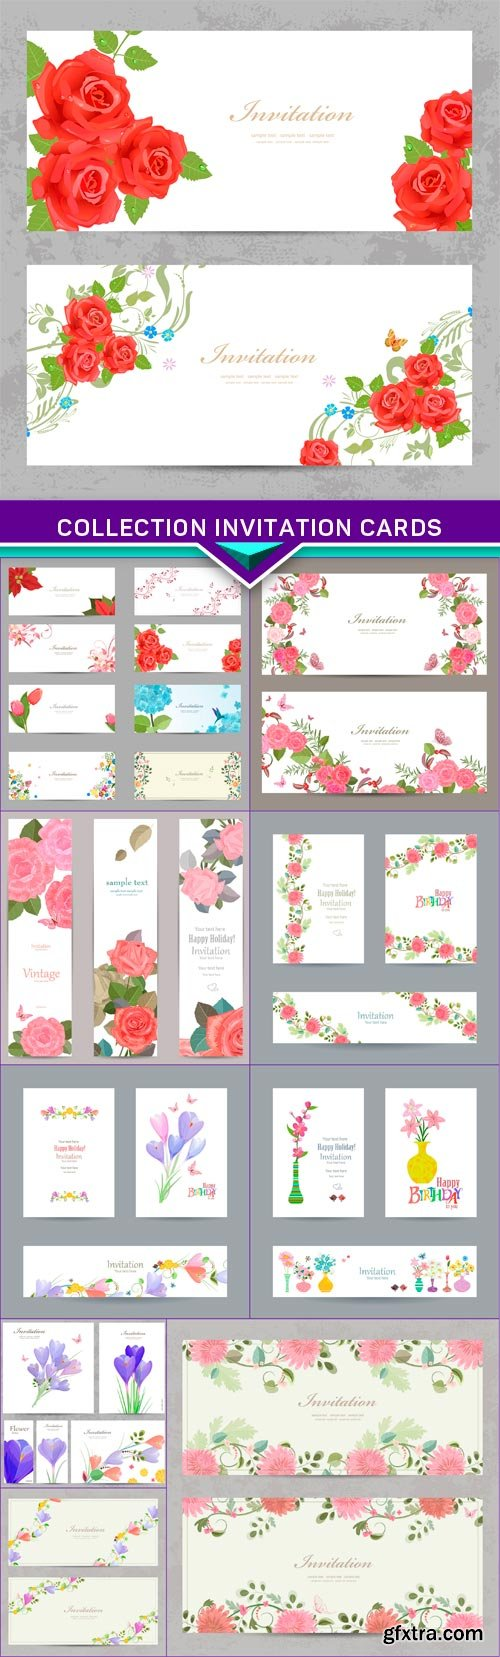 Collection invitation cards with flower for your design 10x EPS